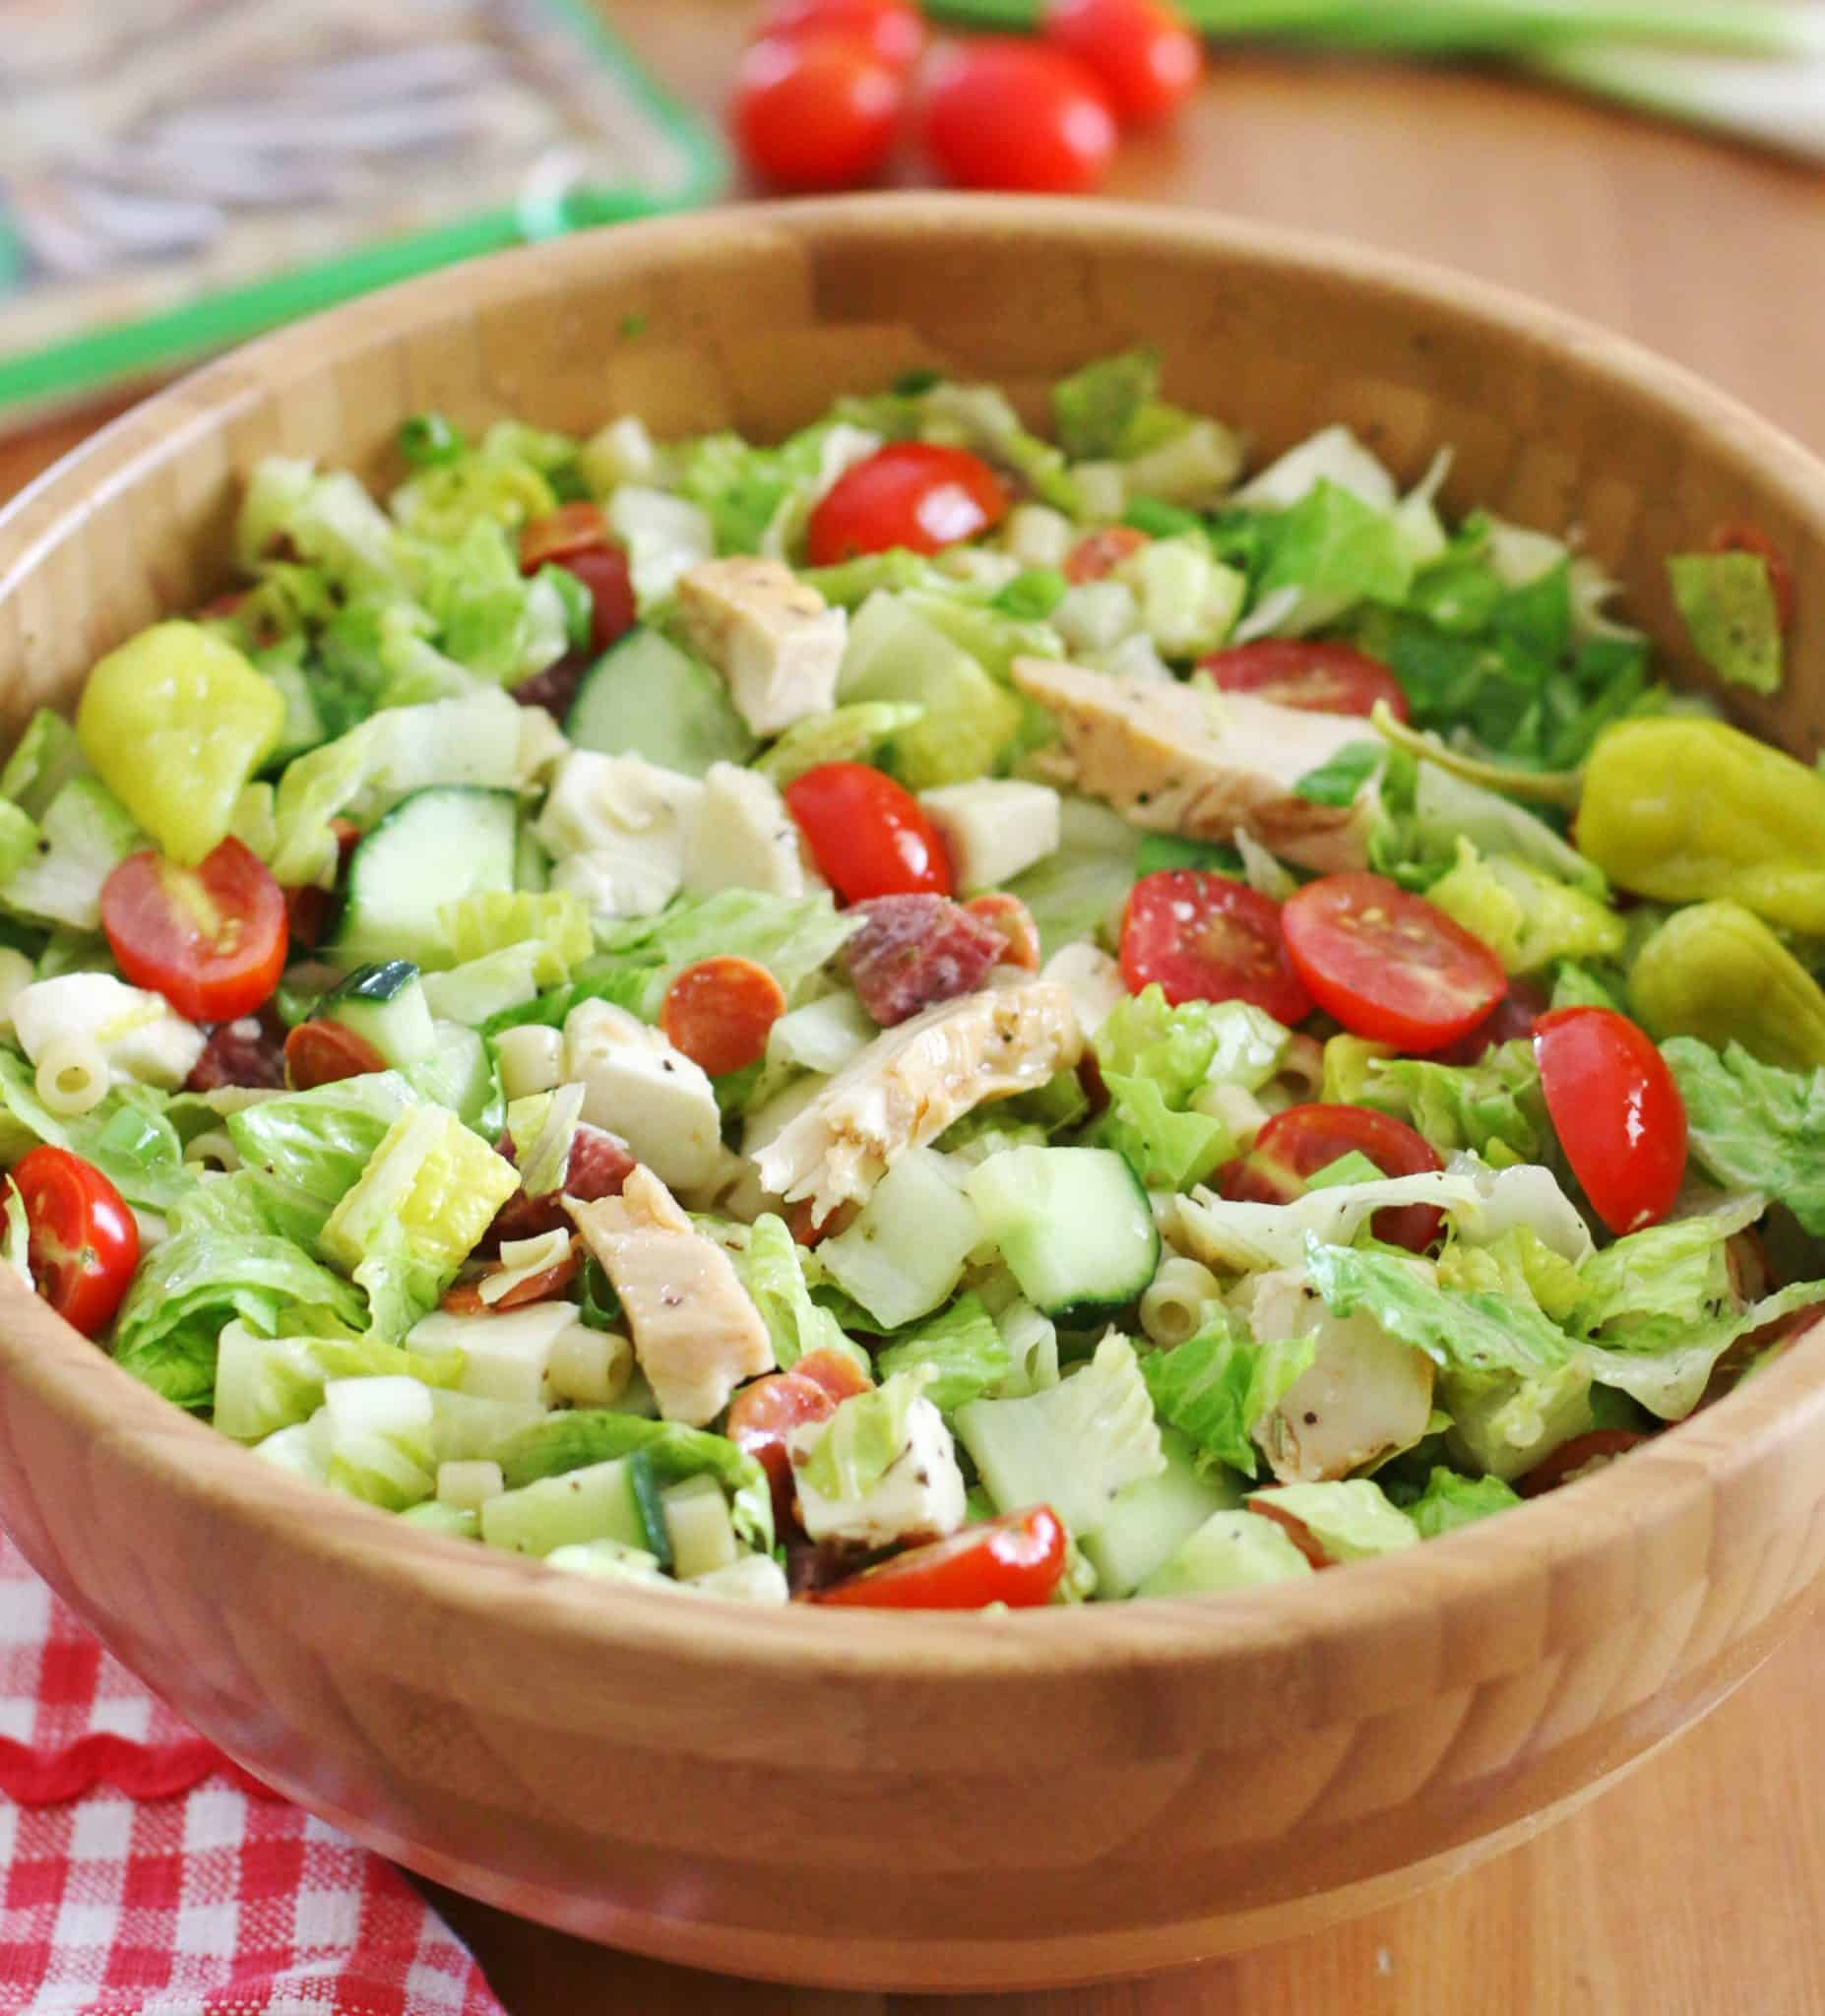 Italian Chopped Salad With Homemade Dressing